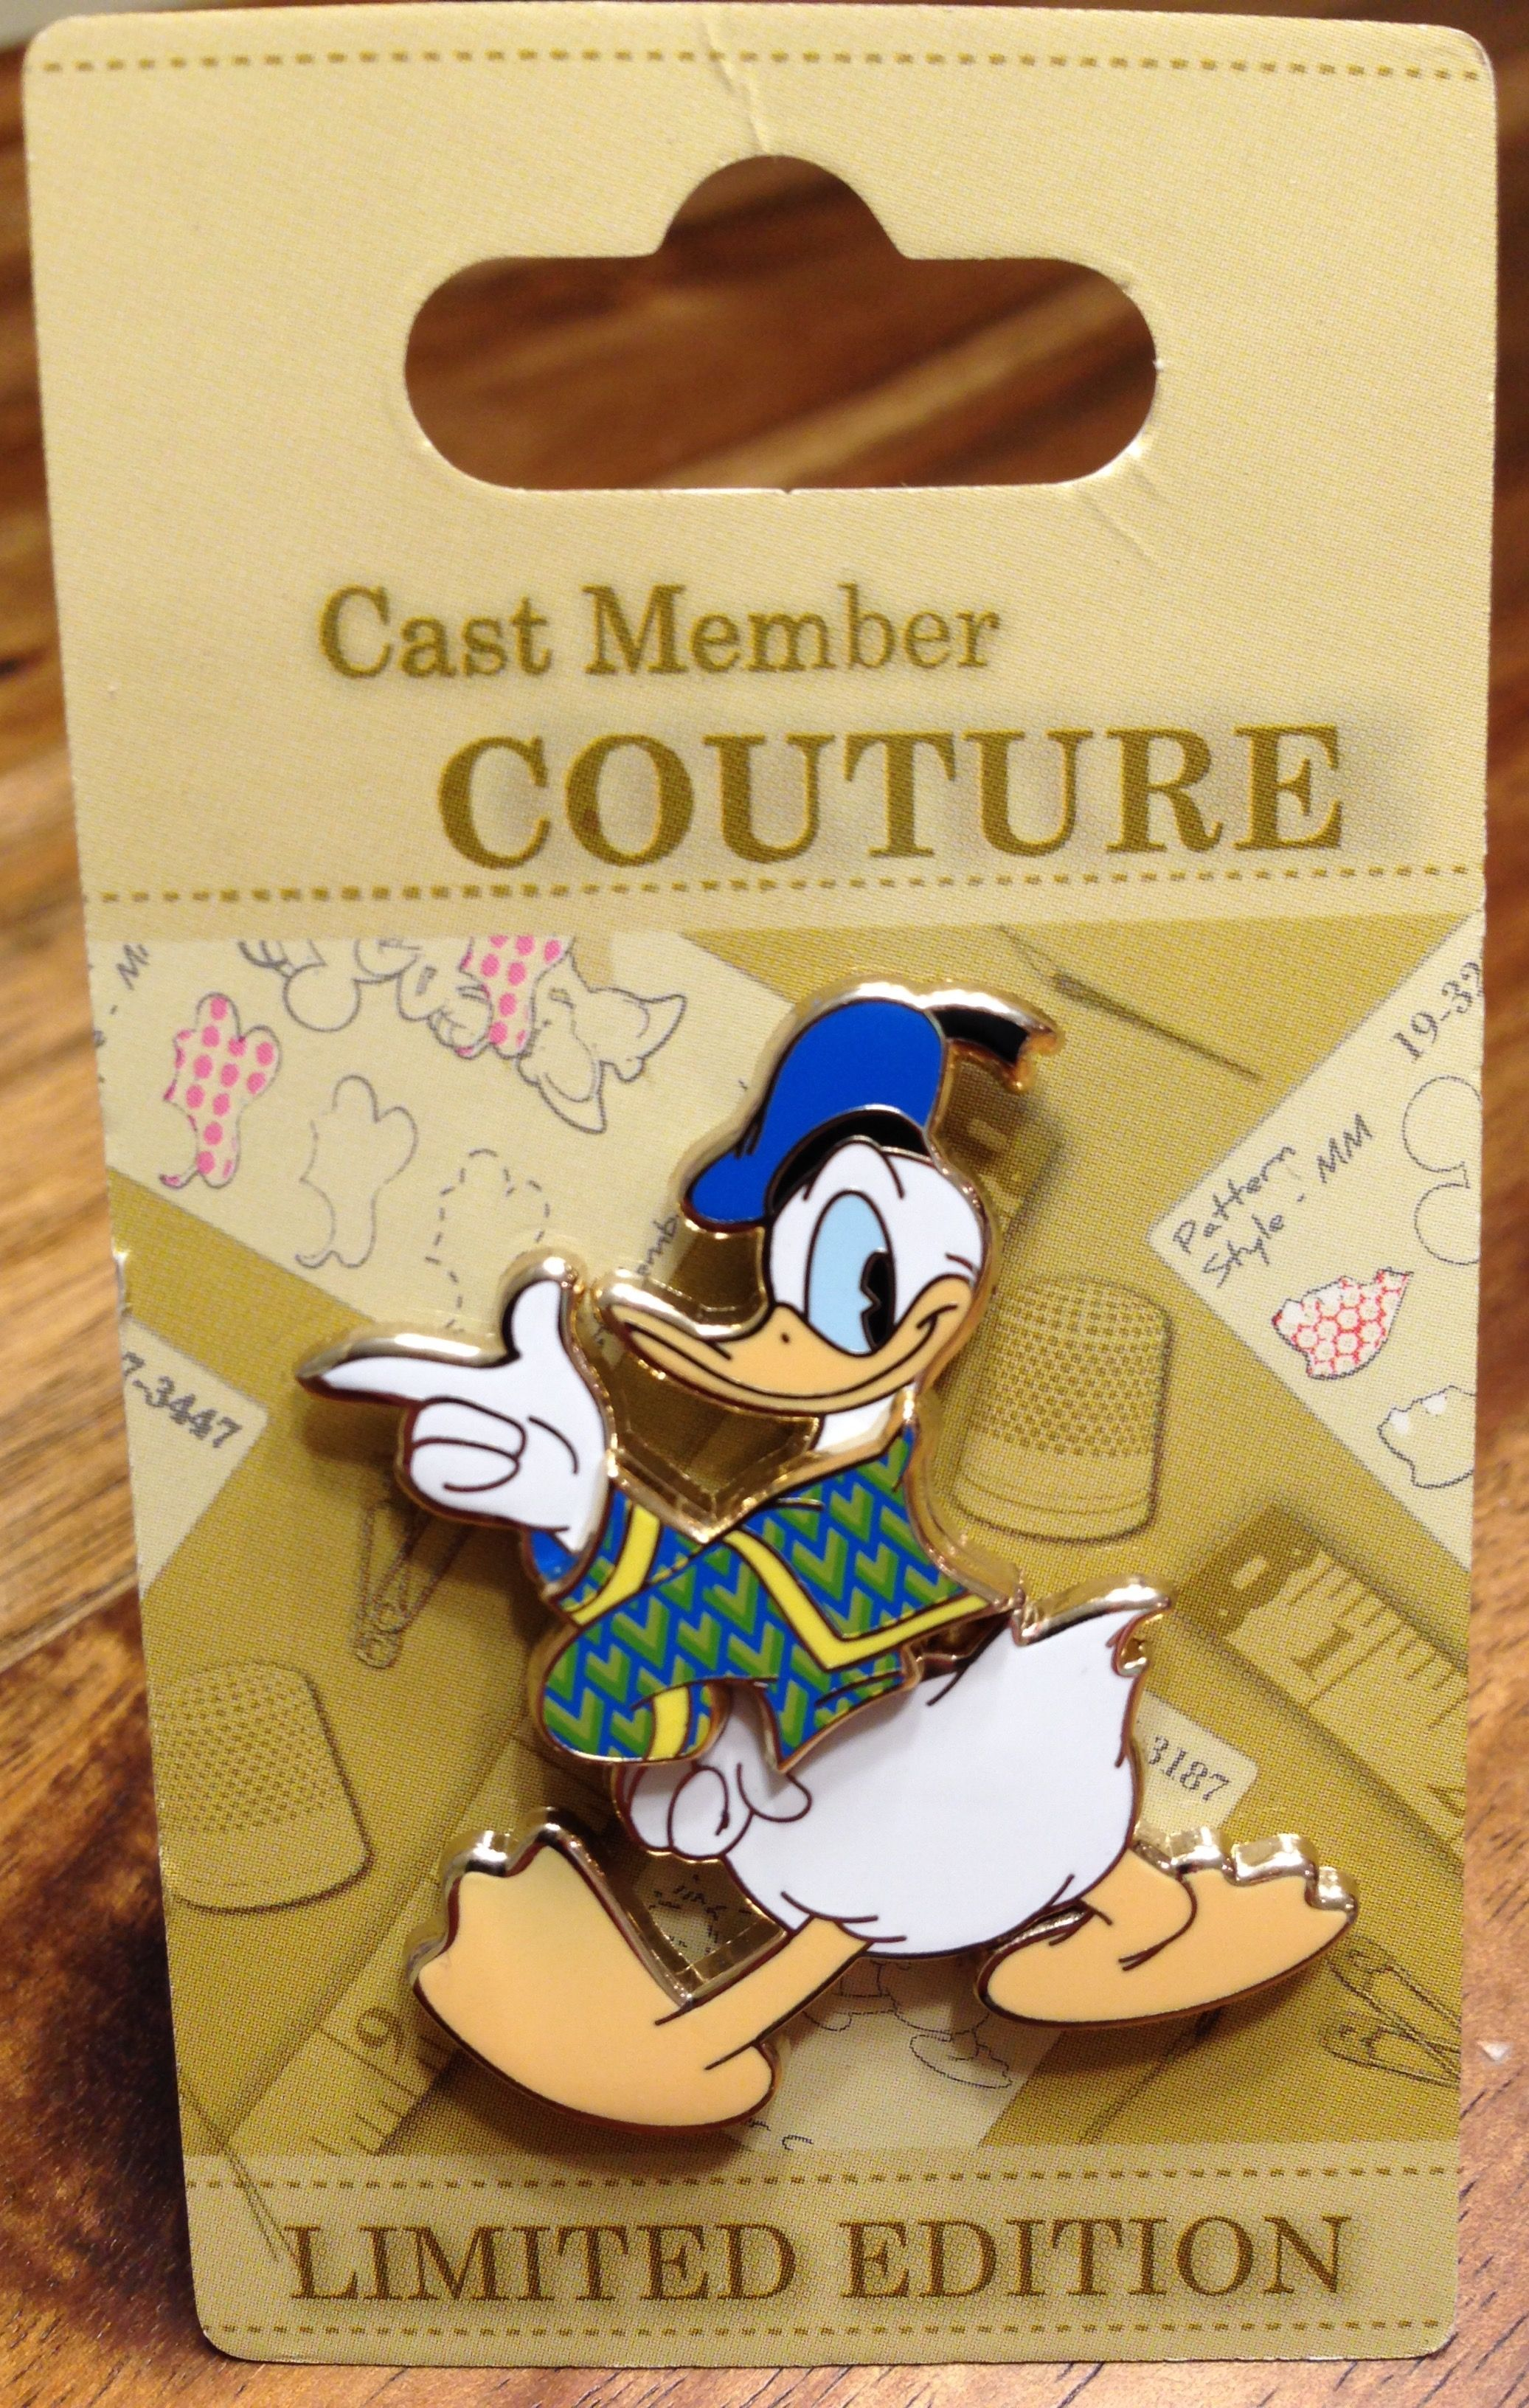 Cast Exclusive - Couture Donald - Limited Edition 500